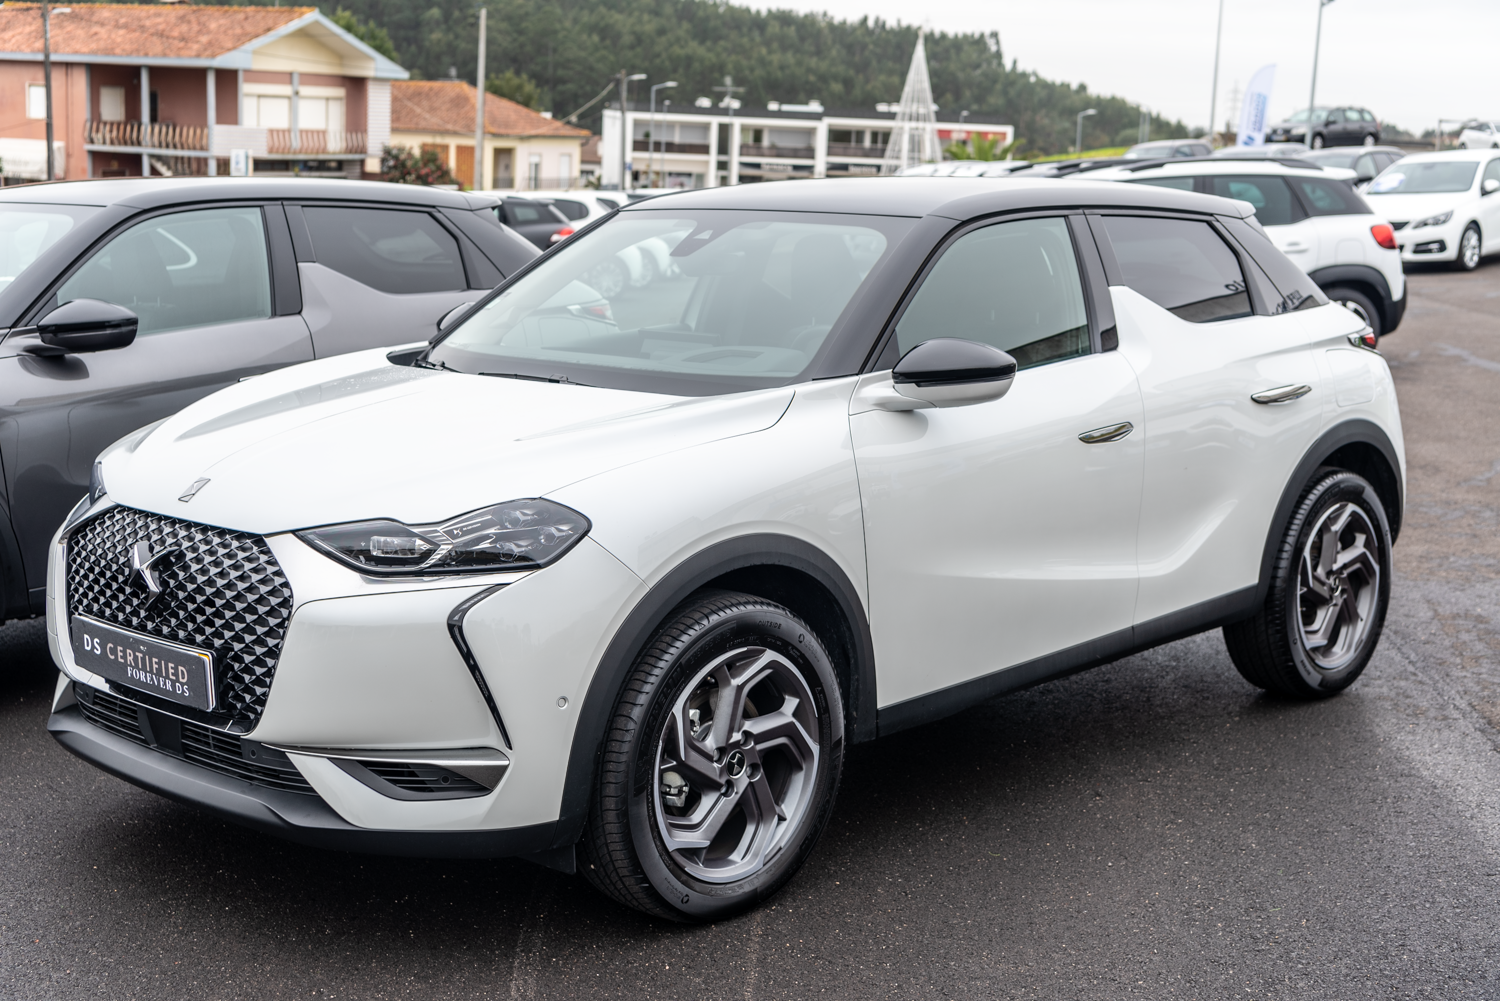 DS DS 3 Crossback 1.2 PureTech 130 Automatic Grand Chic